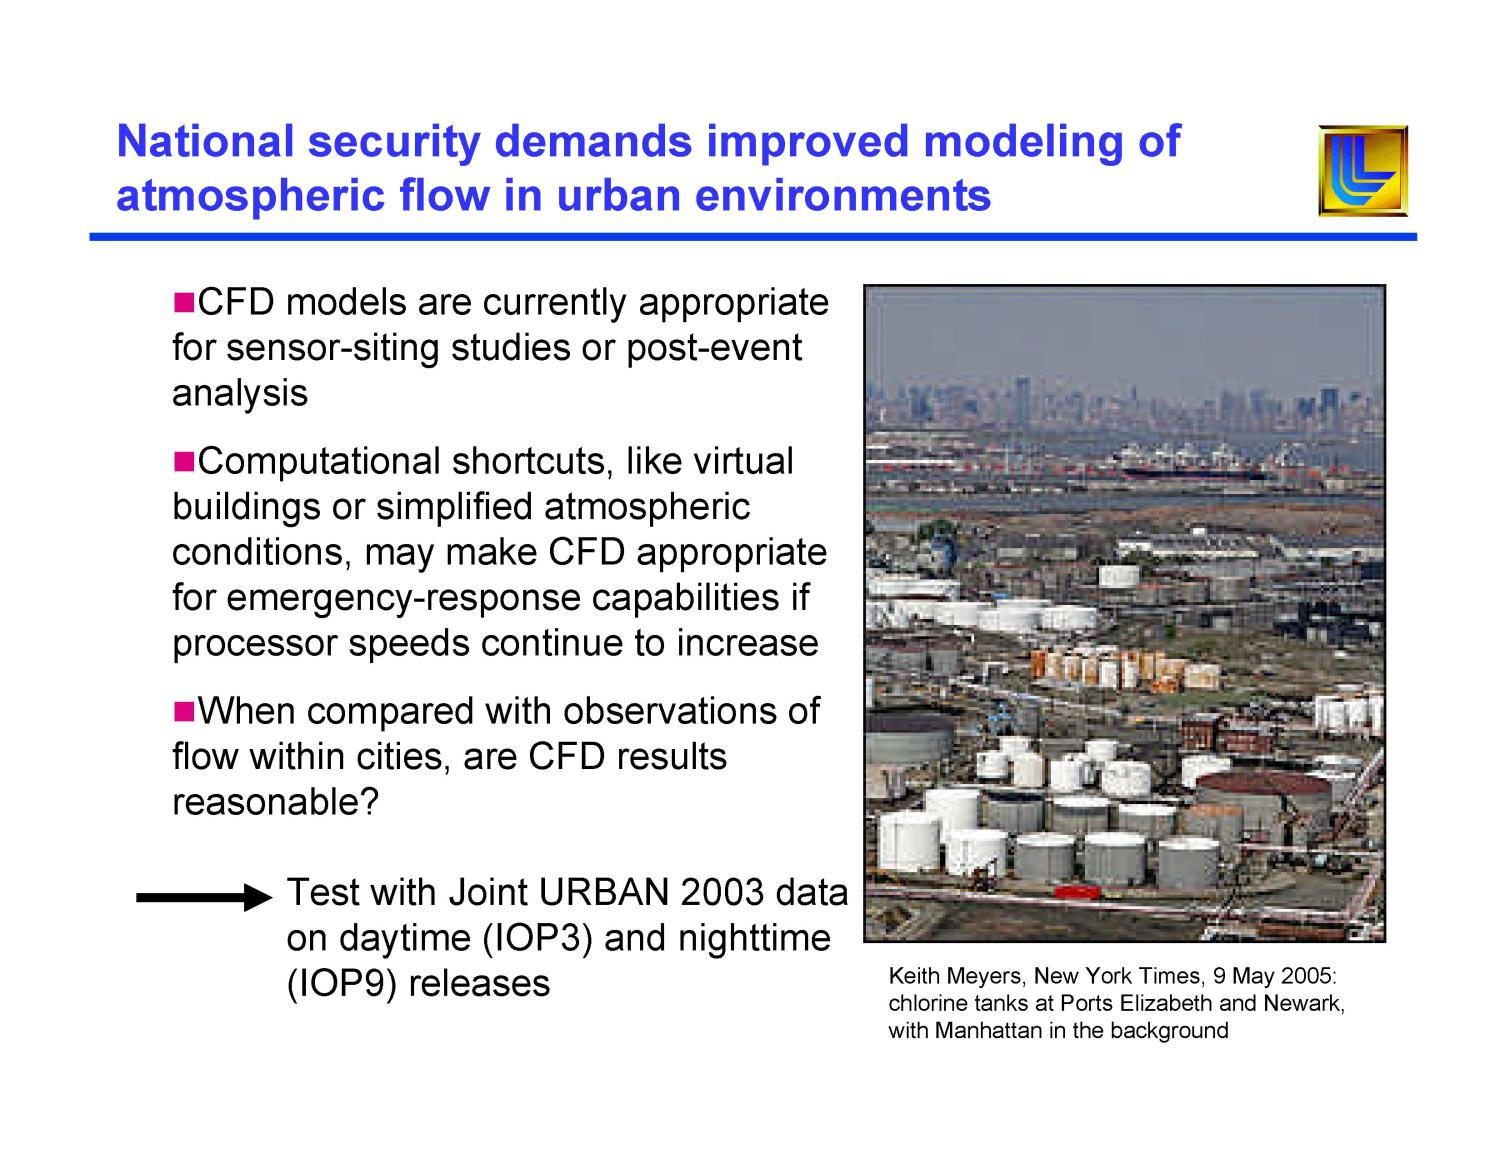 Analysis of Joint URBAN 2003 Wind and Turbulence Profiles and Comparison with FEM3MP Simulations                                                                                                      [Sequence #]: 4 of 18